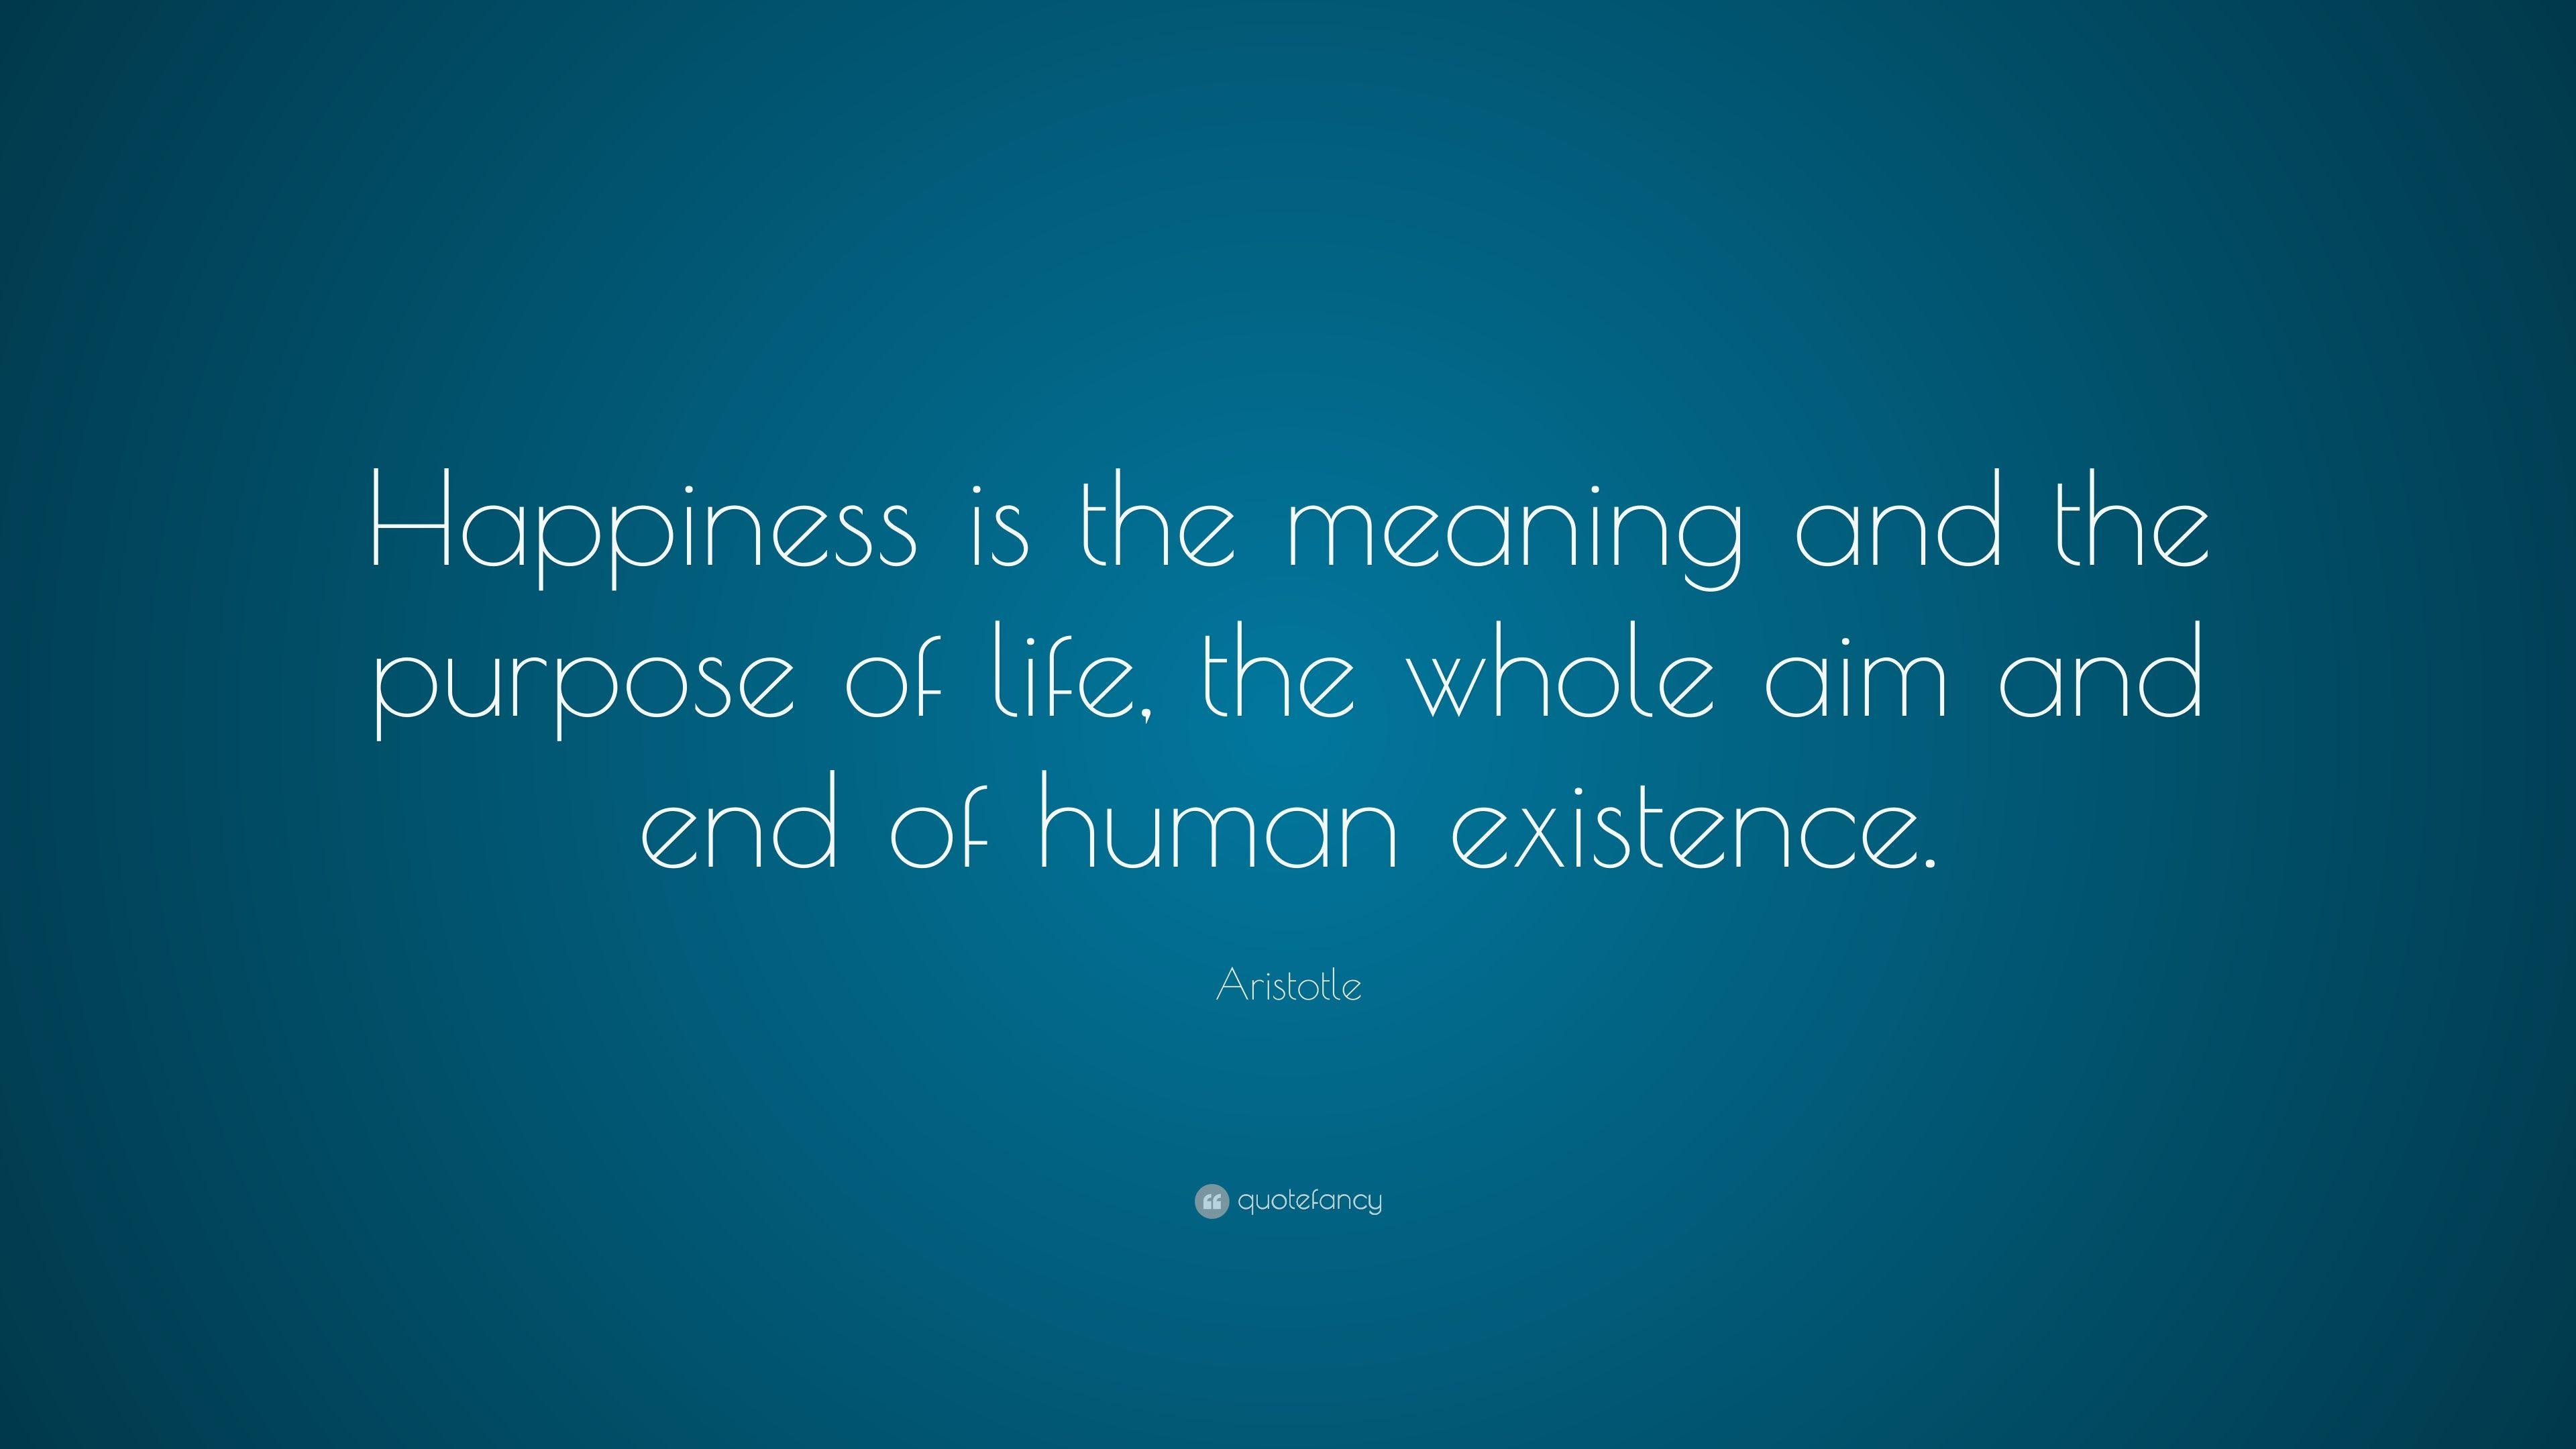 aristotles belief of human purpose of life to achieve happiness In this paper, i describe aristotle's concept of eudaimonia, explain how it fits into his political theory, and argue that finding fallacies in it, while possible, is not helpful.